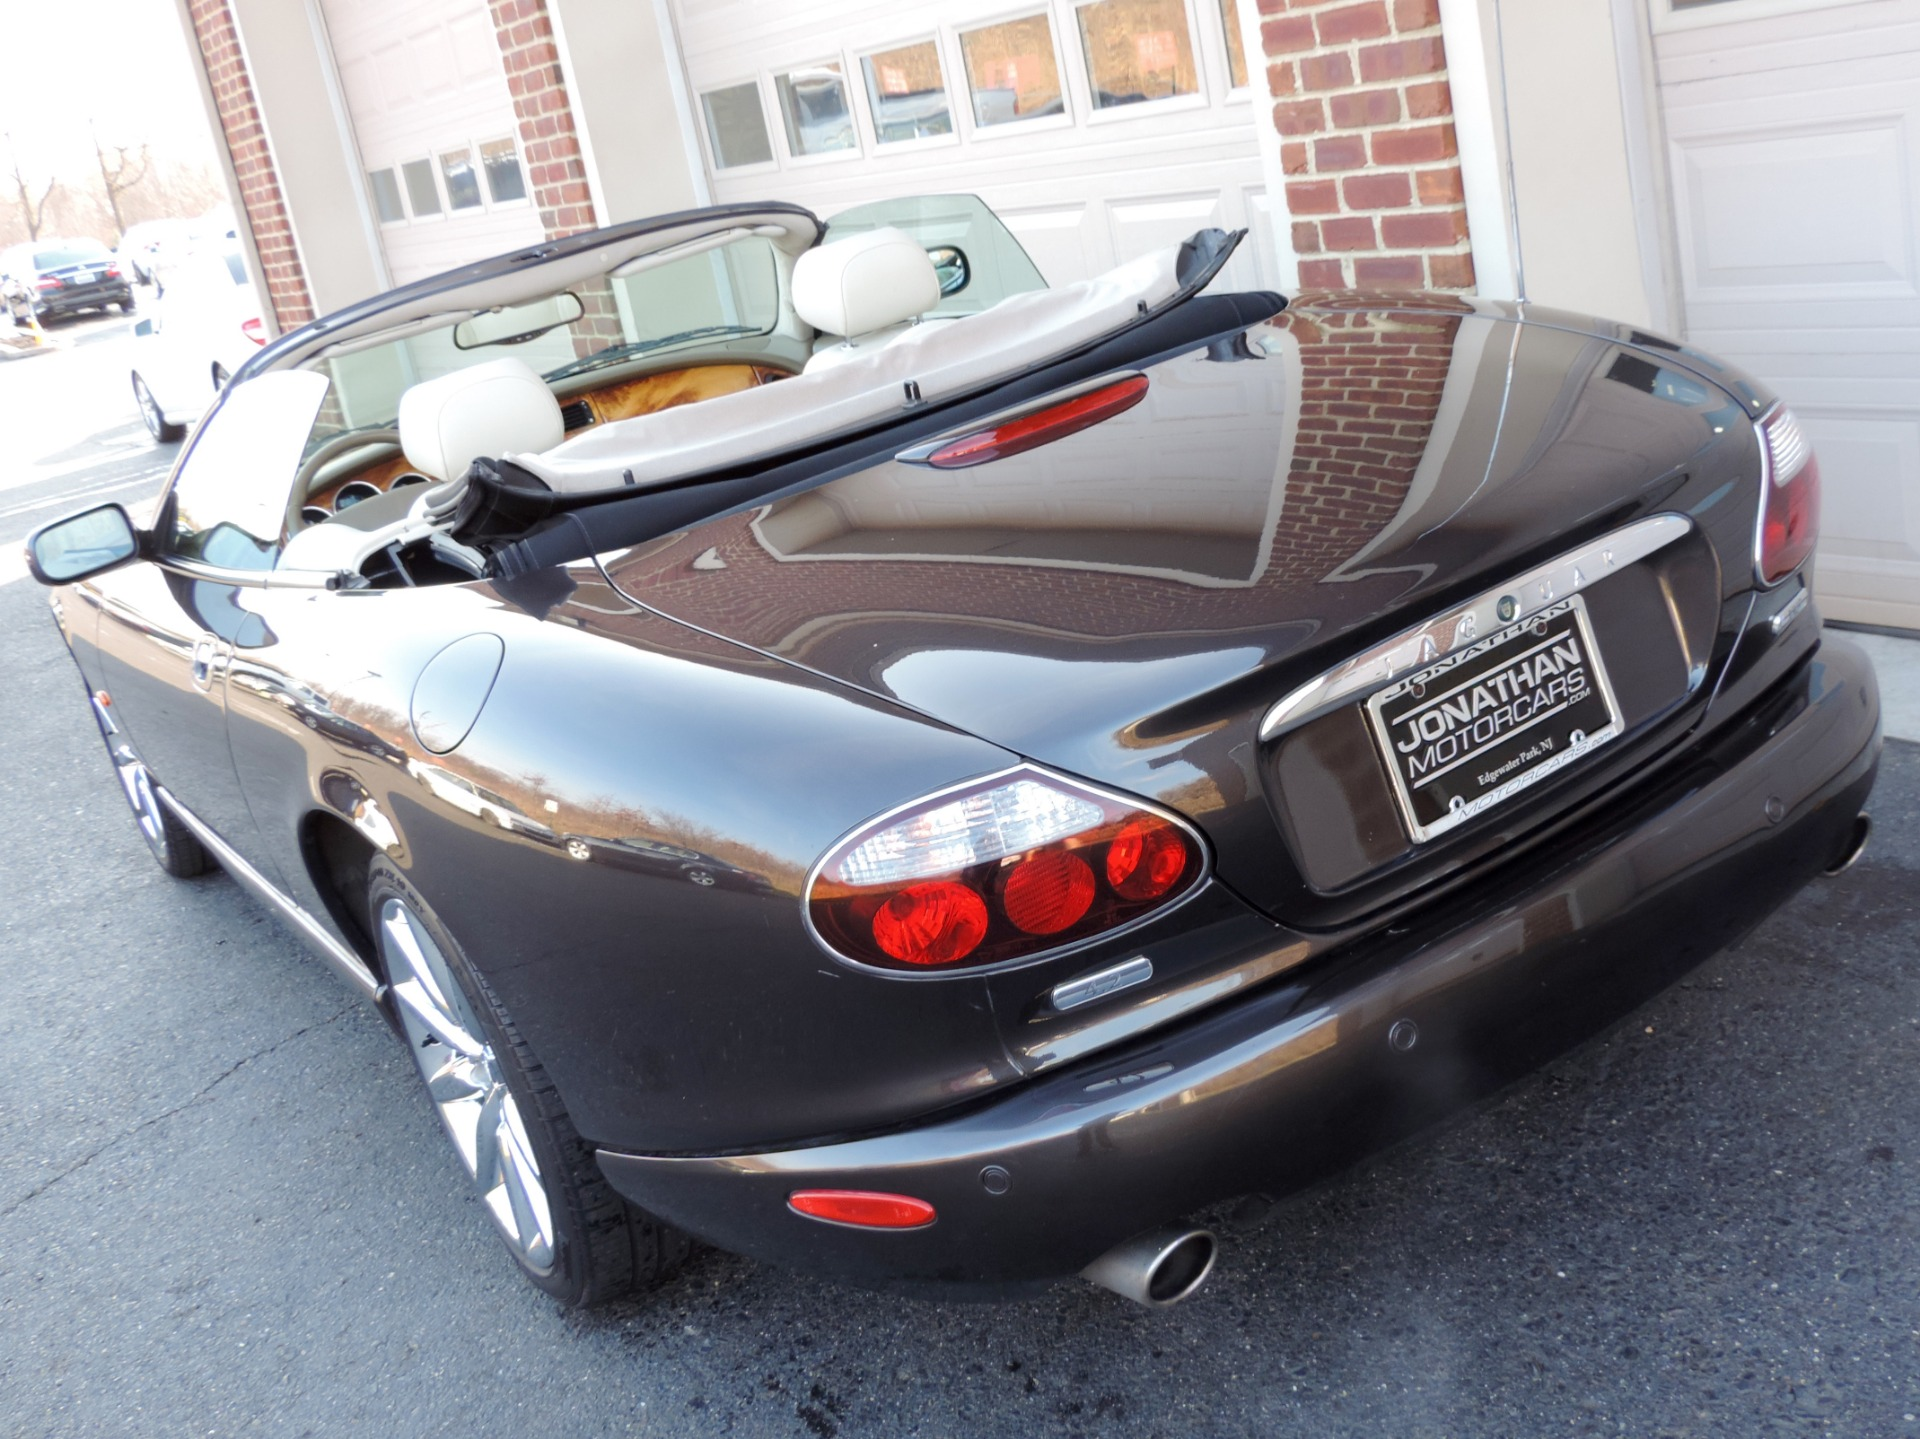 cars plymouth convertible sale cargurus imgurl orion uploads image l in mi jaguar for lake xk used series